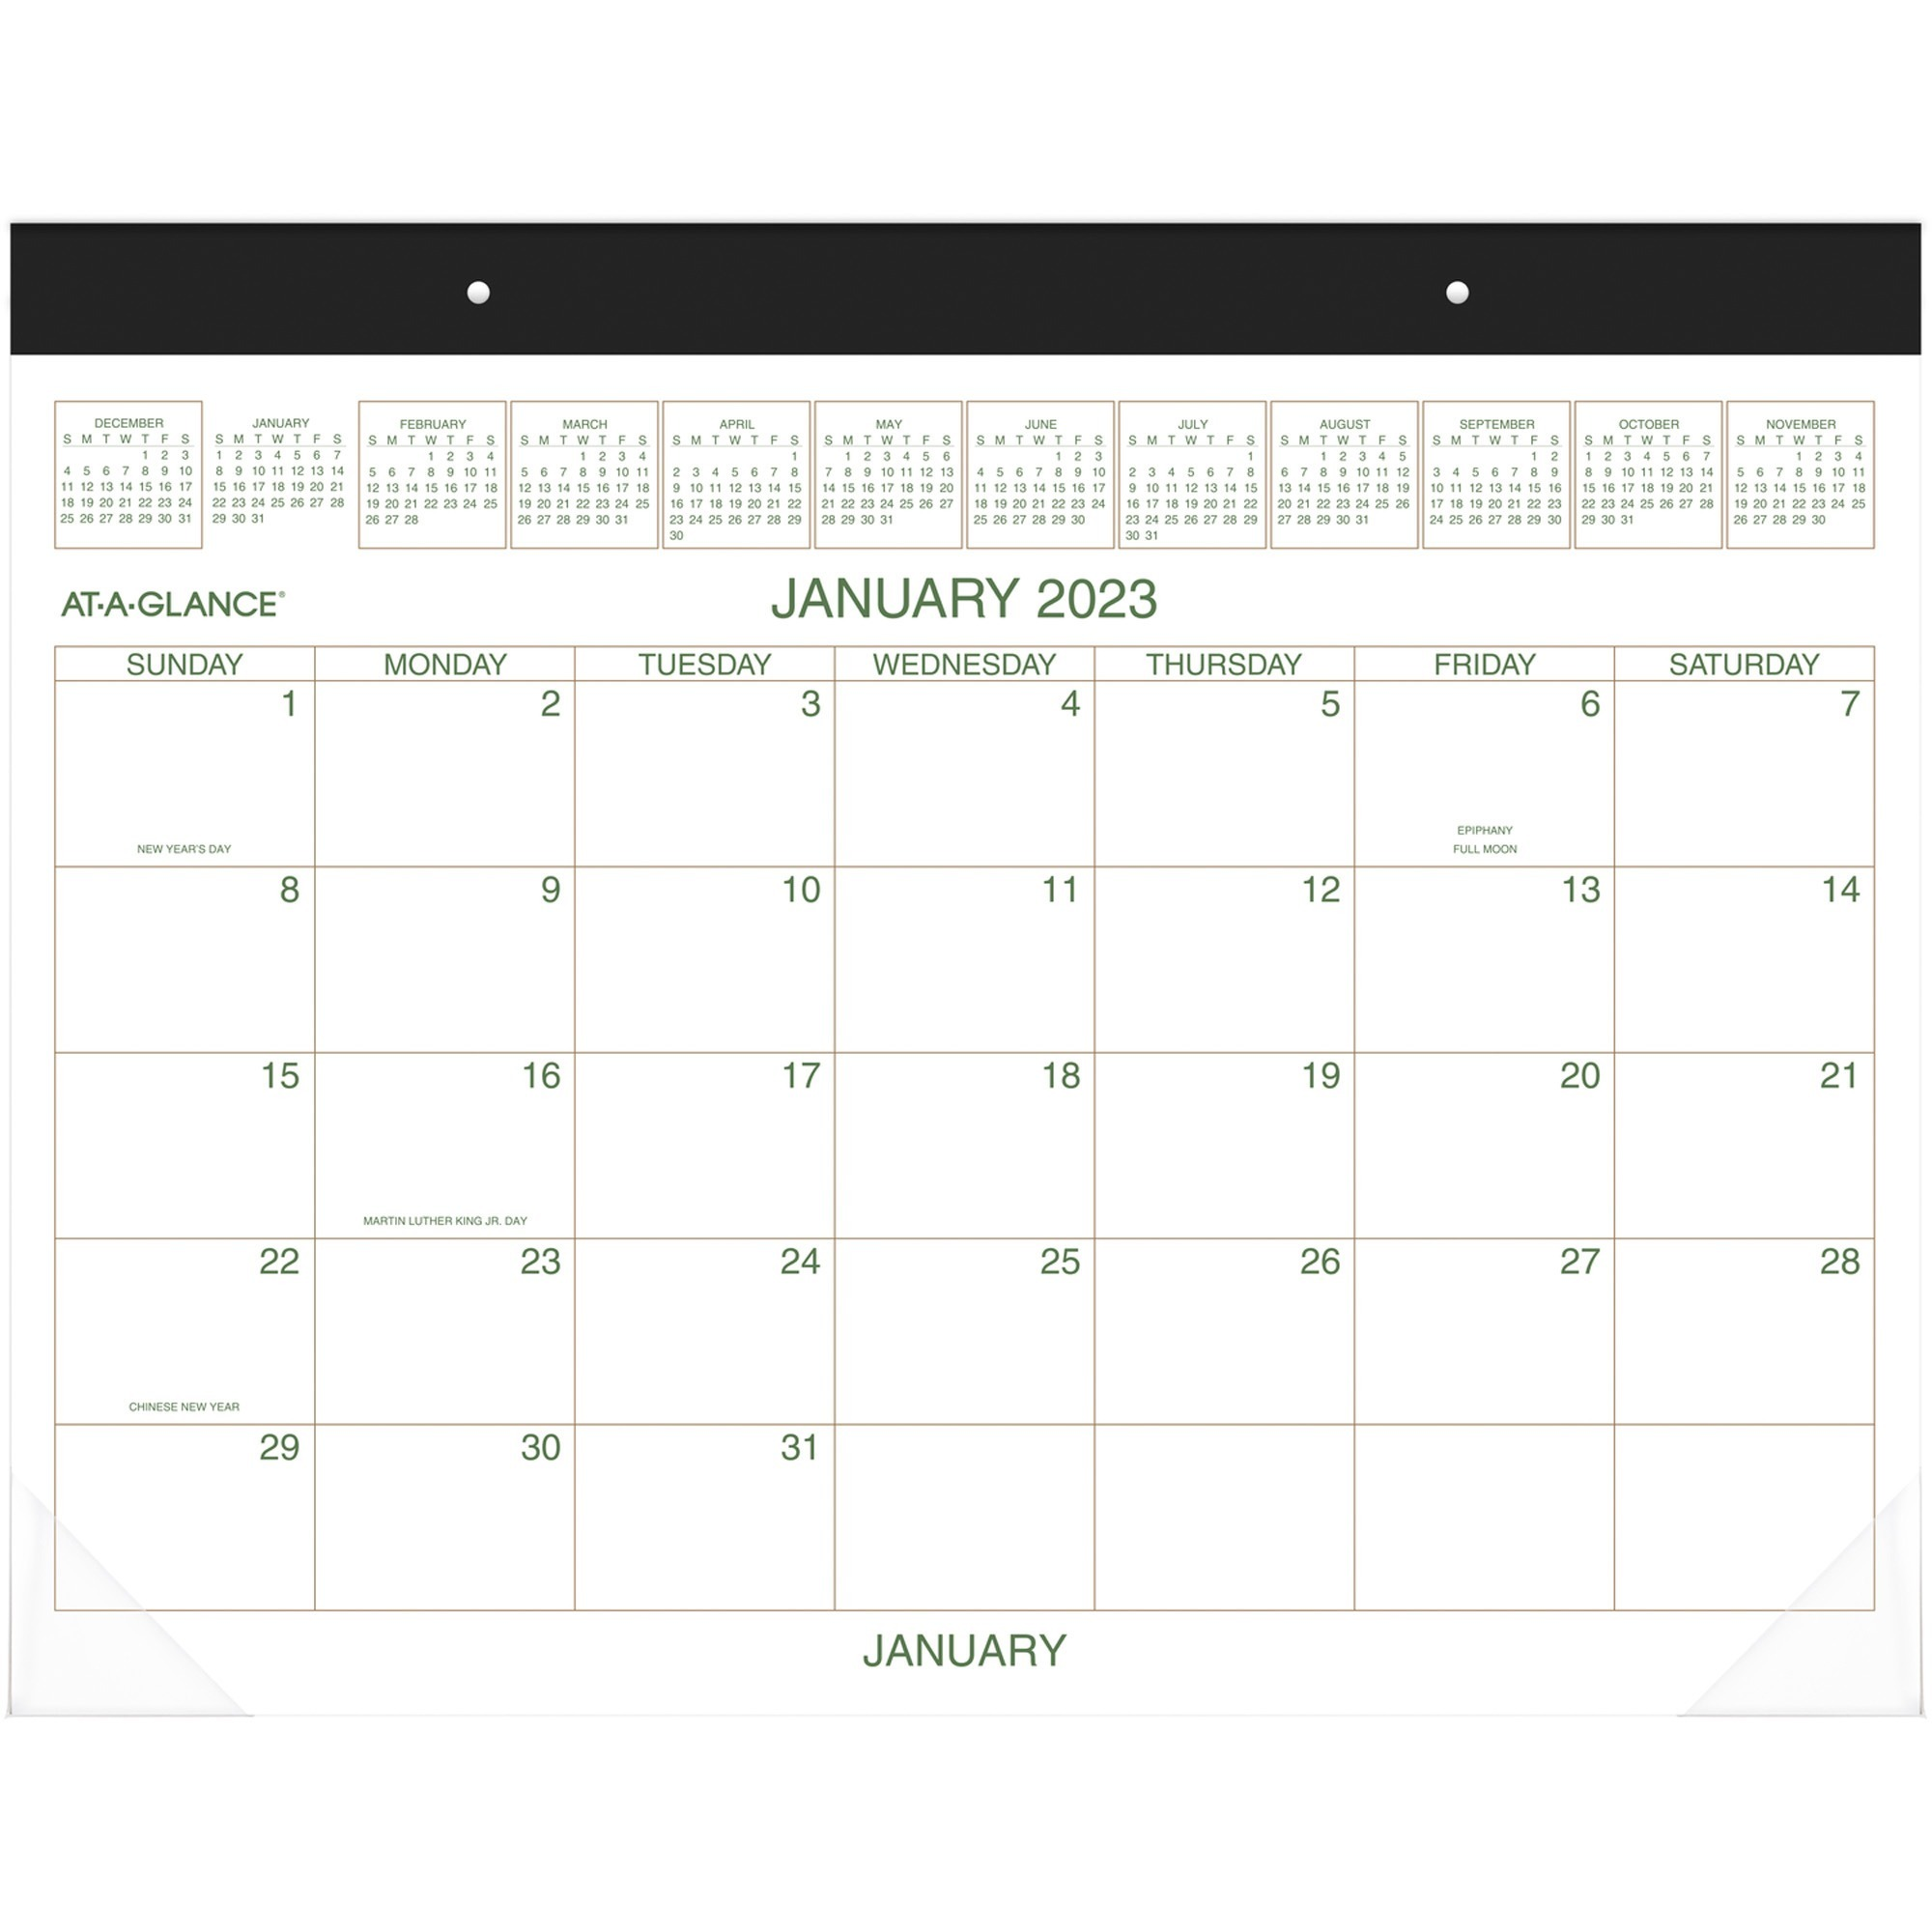 At-A-Glance Two-Color Monthly Desk Pad - Yes - Monthly - 1 Year - January 2020 till December 2020 - 1 Month Single Page Layout - 22